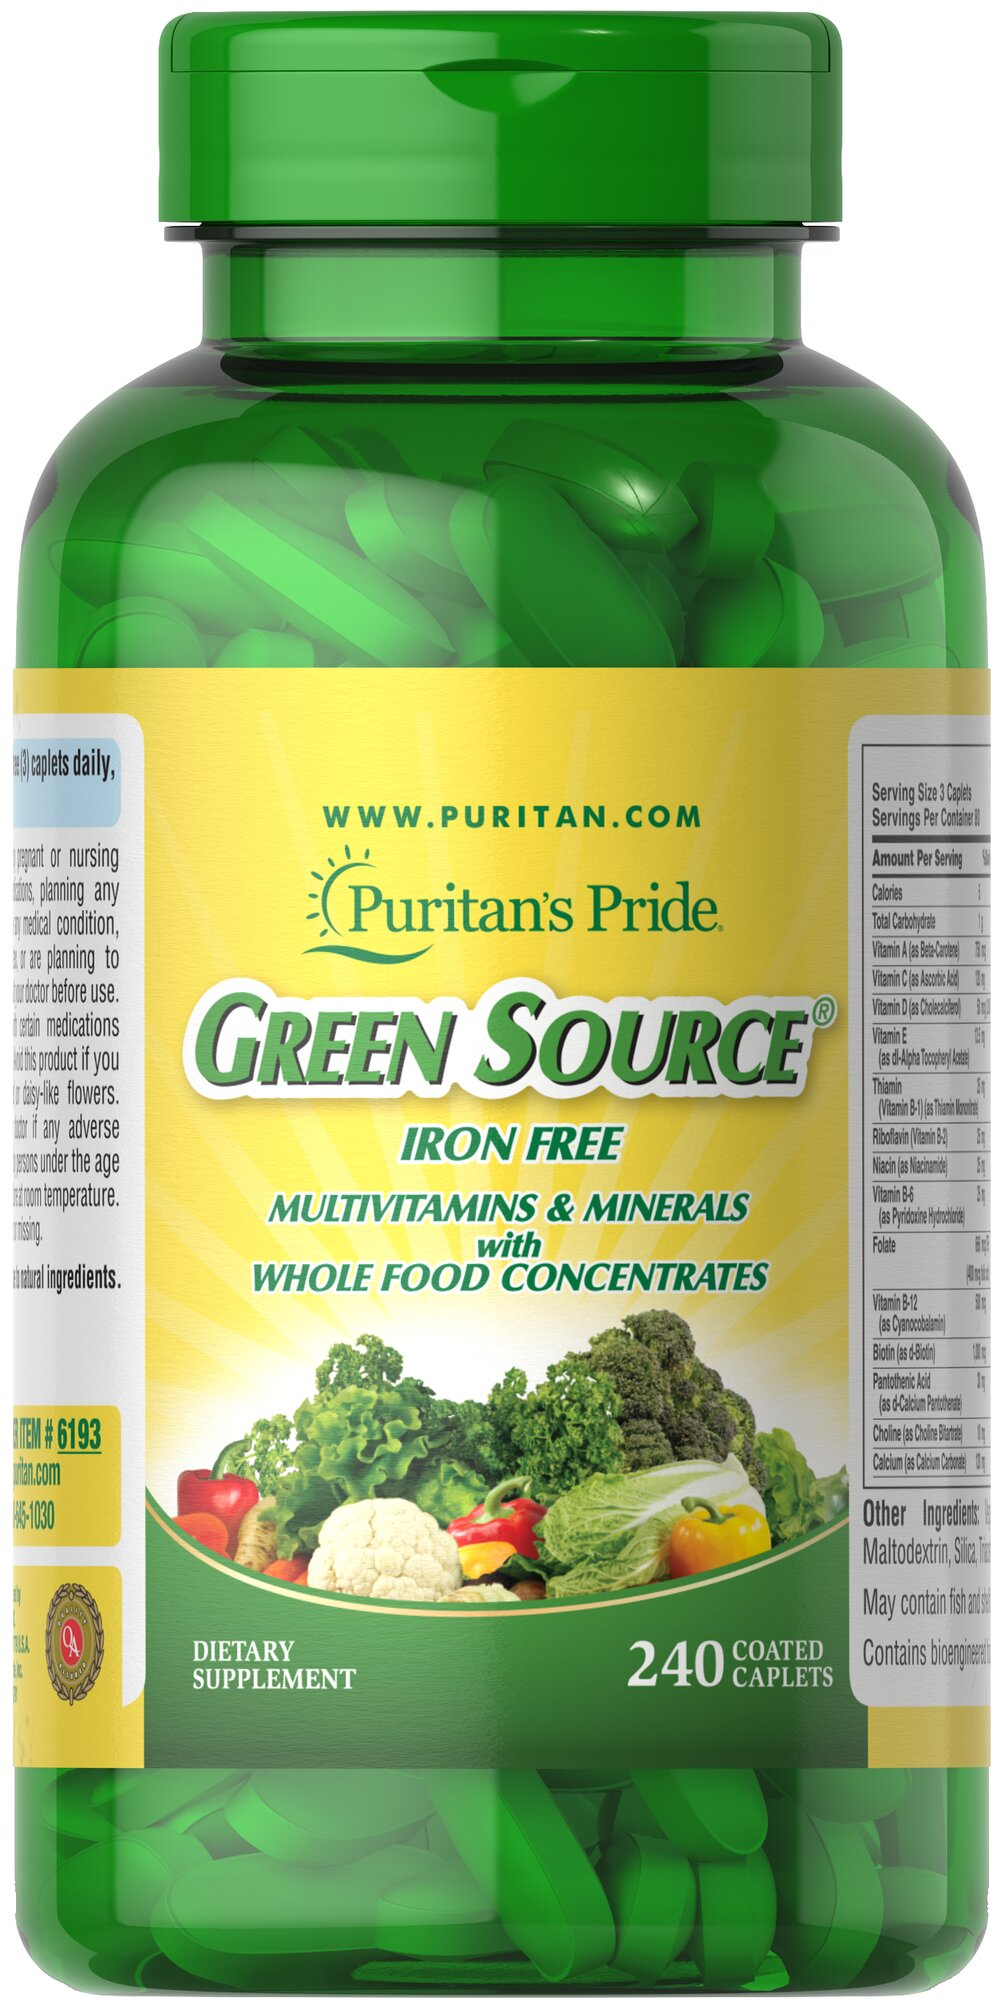 Green Source® Iron Free Multivitamin & Minerals <p>This concentrated formula is Iron Free and contains potent food source nutrients to provide essential vitamins, minerals, enzymes and amino acids. It also provides all the naturally occurring active constituents of whole foods. </p> 240 Caplets  $59.99